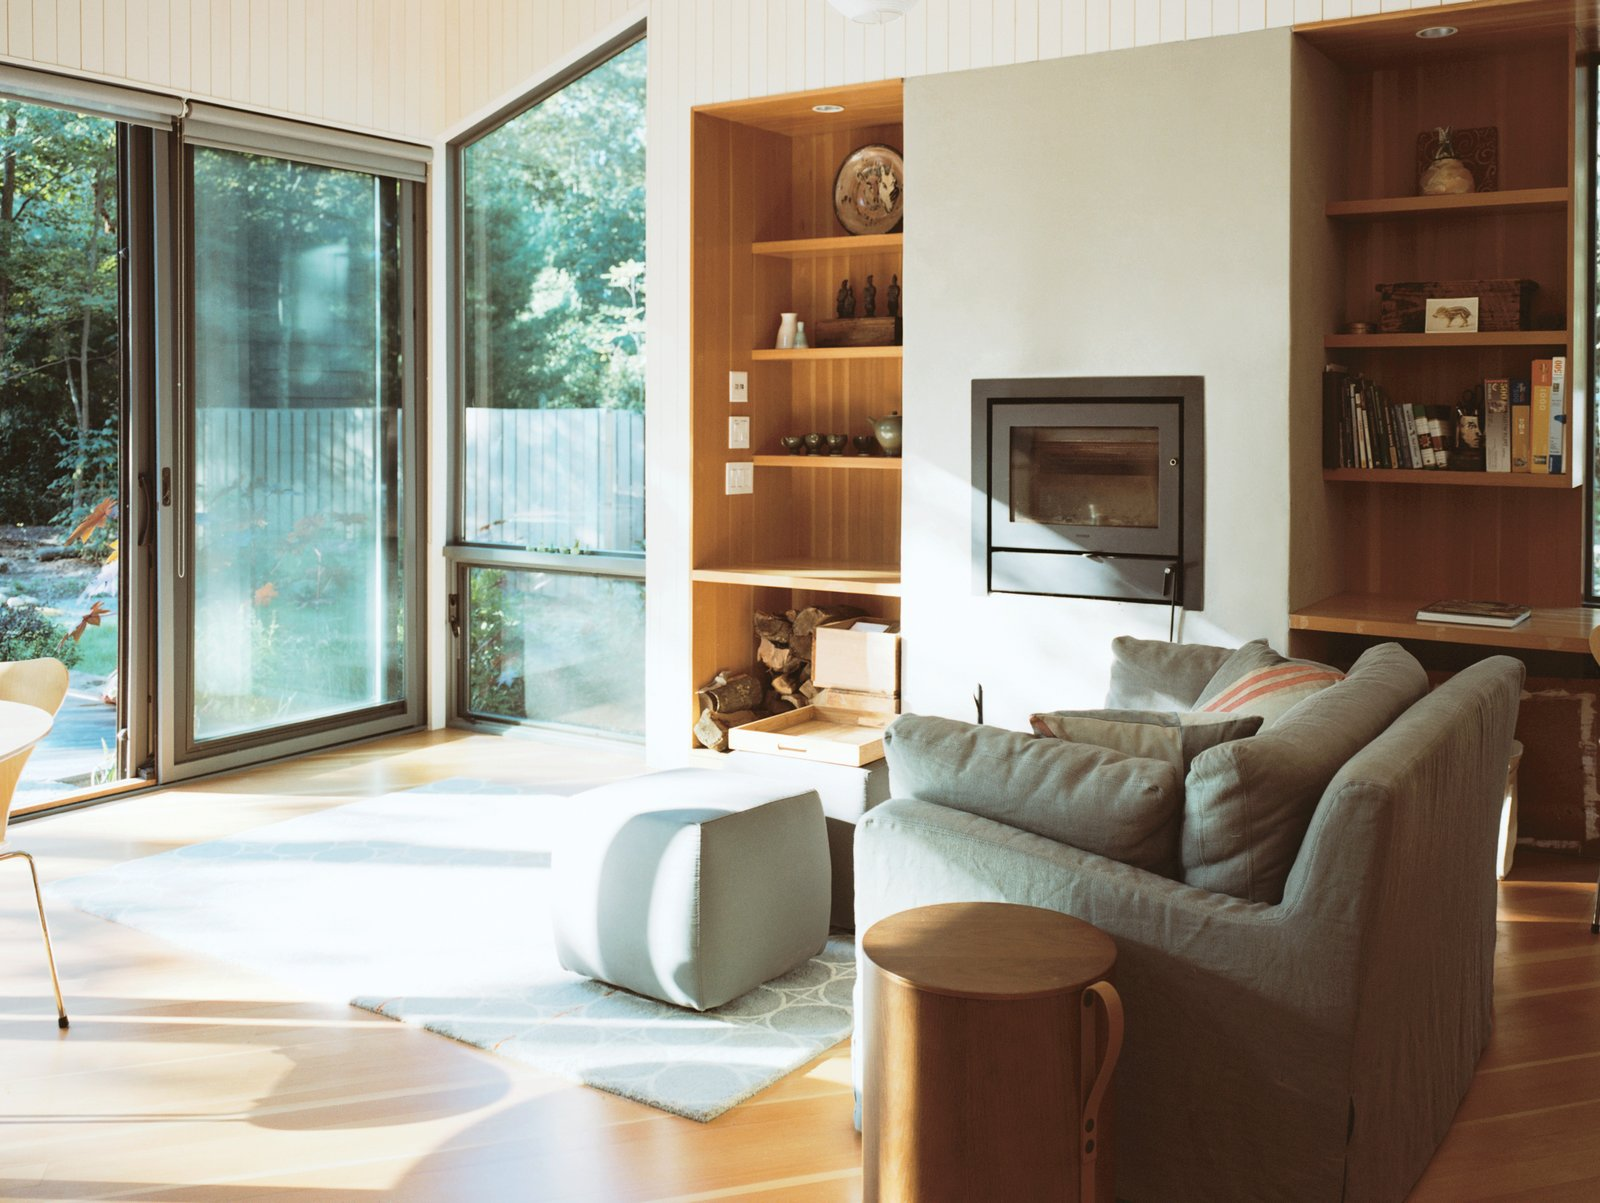 For the floor and built-ins, the architects opted for Douglas fir. The recessed wood-burning stove is a Morsø 5660.